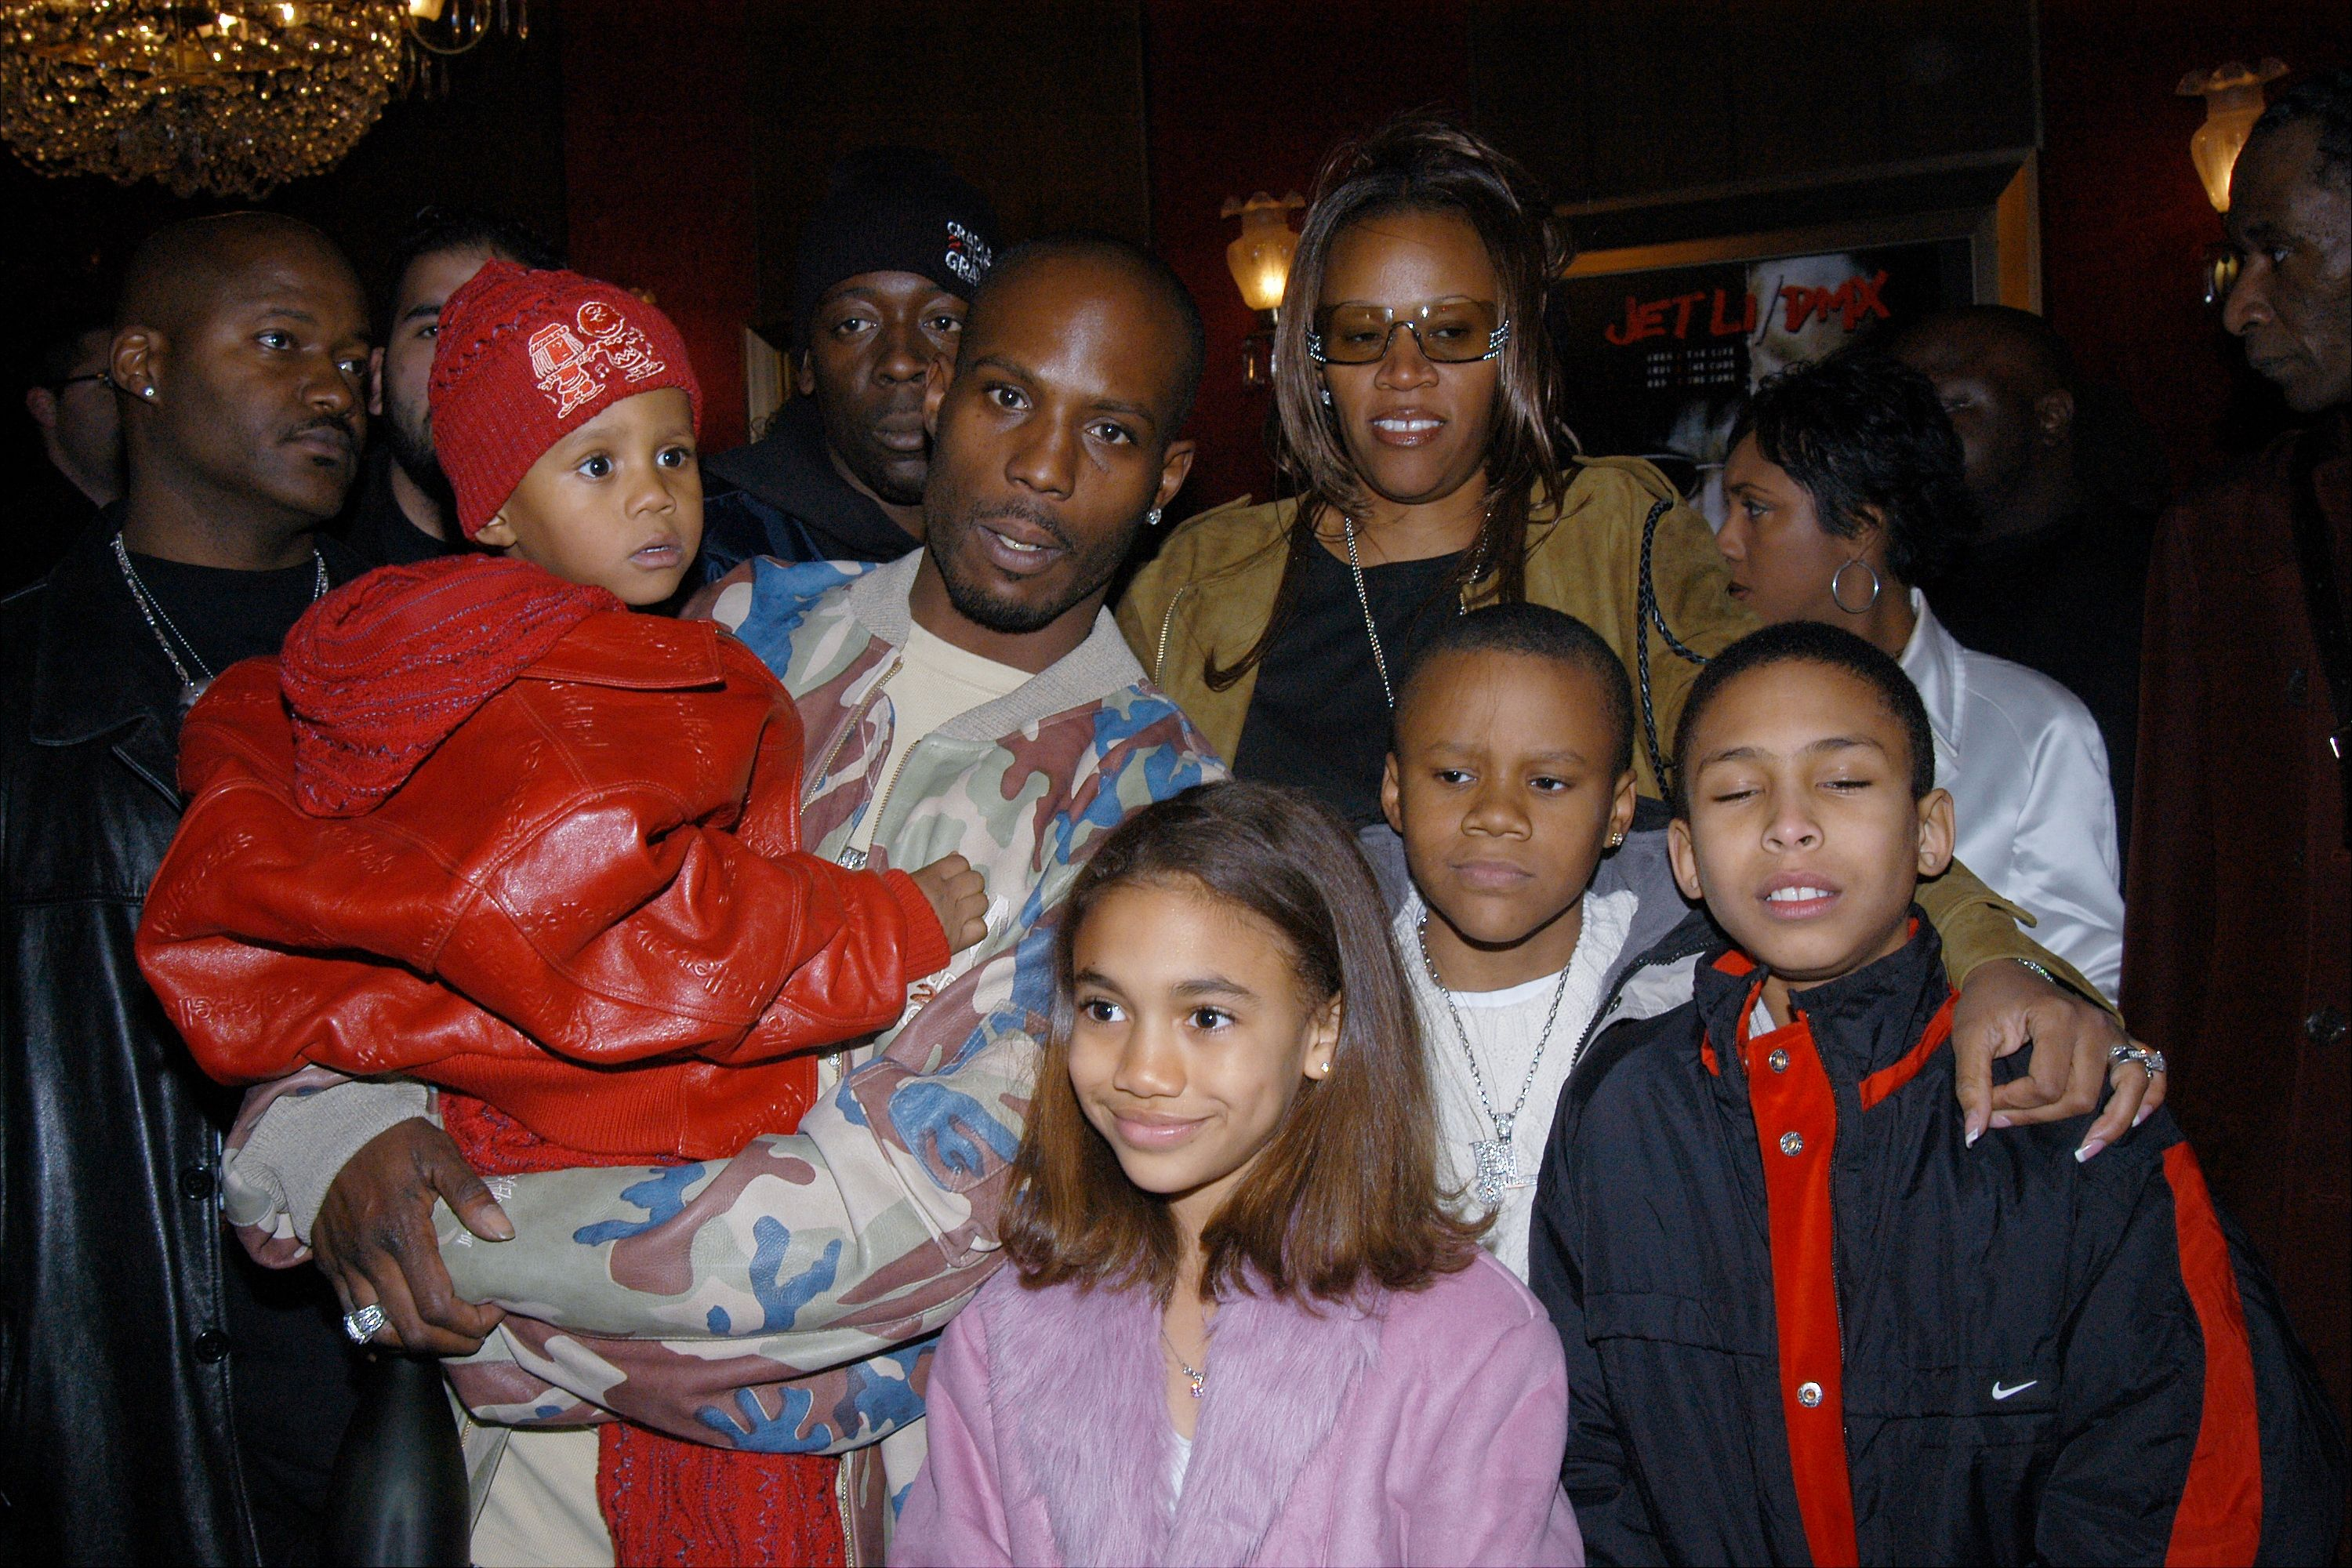 """Rapper DMX, wife Tashera and children at the Ziegfeld Theater """"Cradle 2 the Grave"""" movie premiere. 